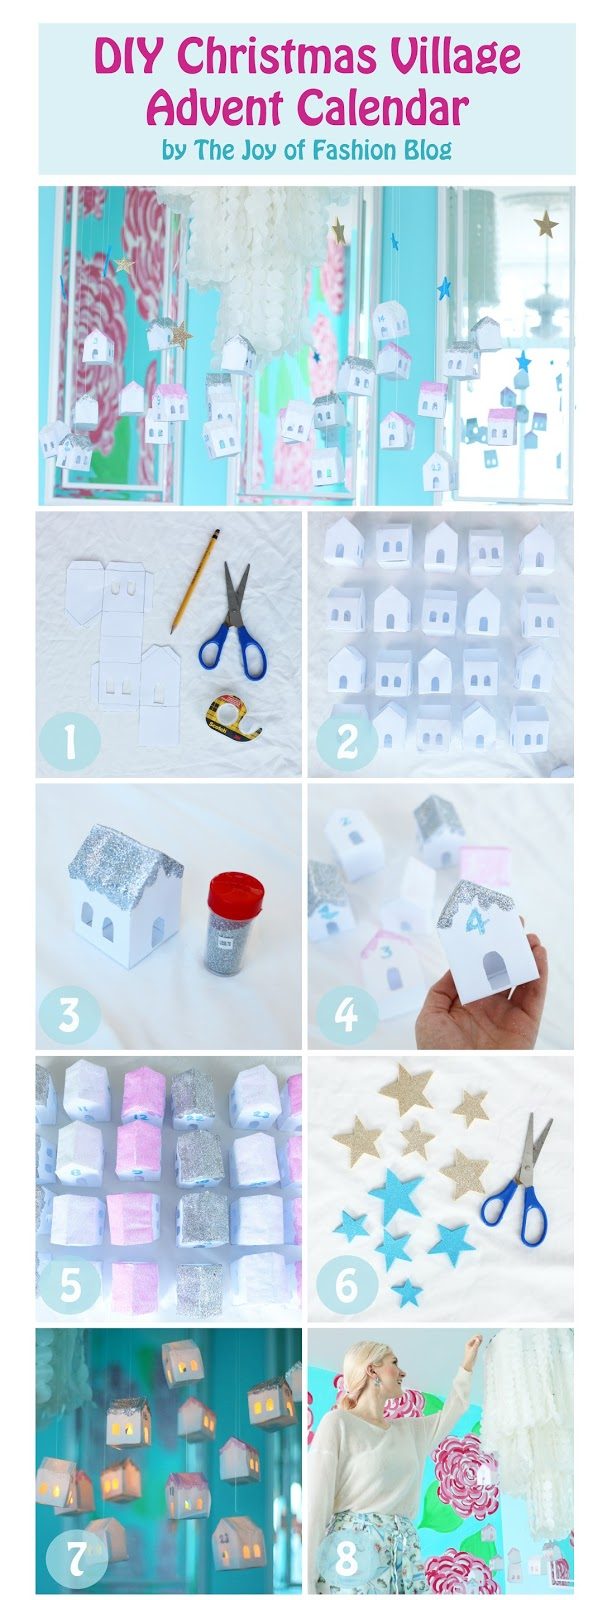 Use paper and glitter to create this cute DIY Advent Calendar made to look like a Christmas Village. Click through for full tutorial